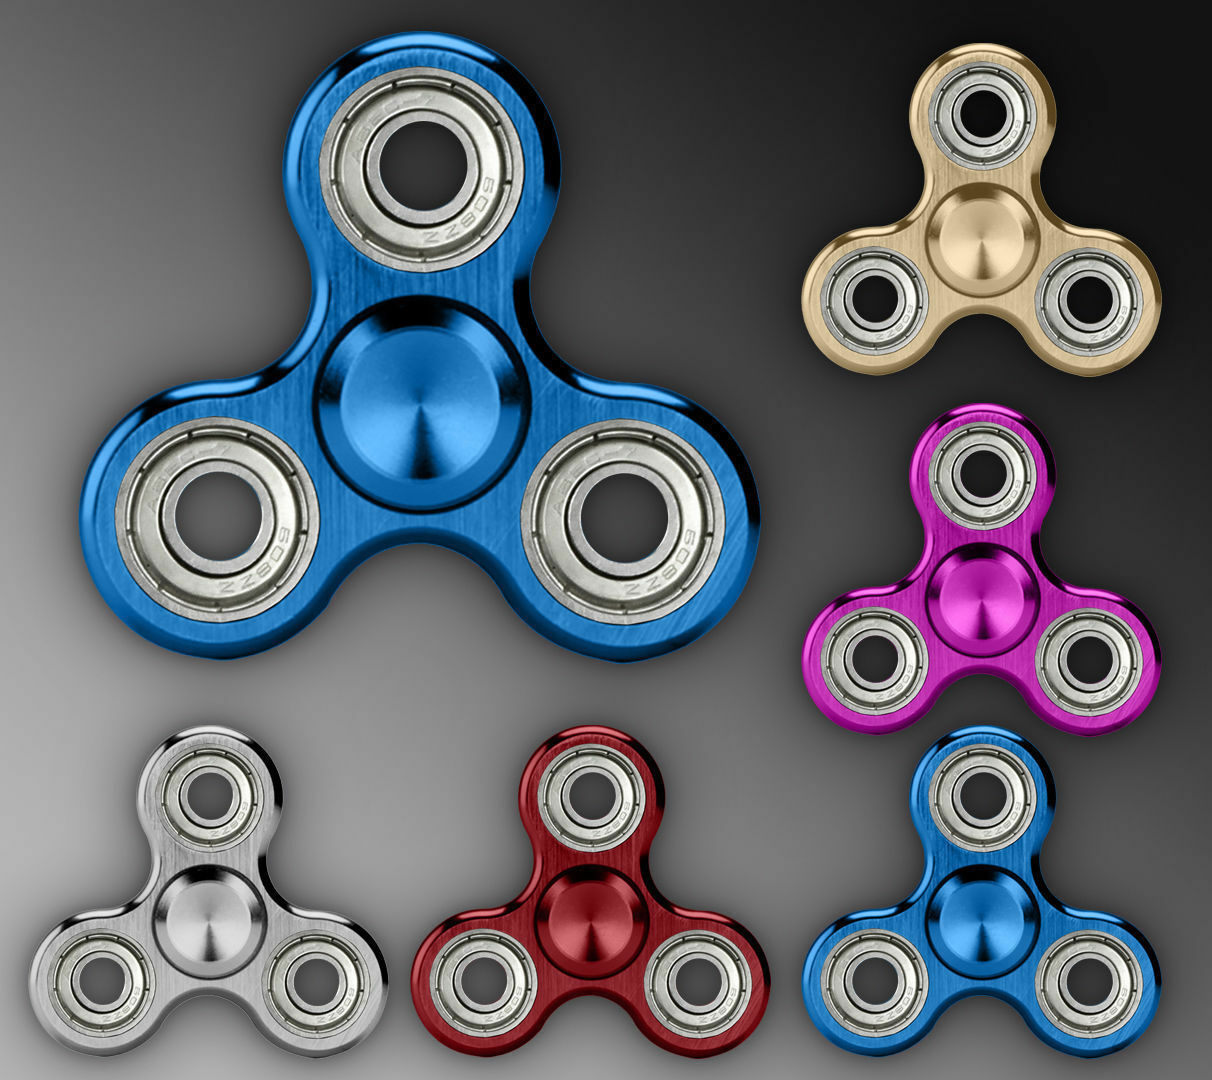 Bangers doigt Spinner main Focus Ultimate SPIN ACIER EDC portant stress Toy Circ